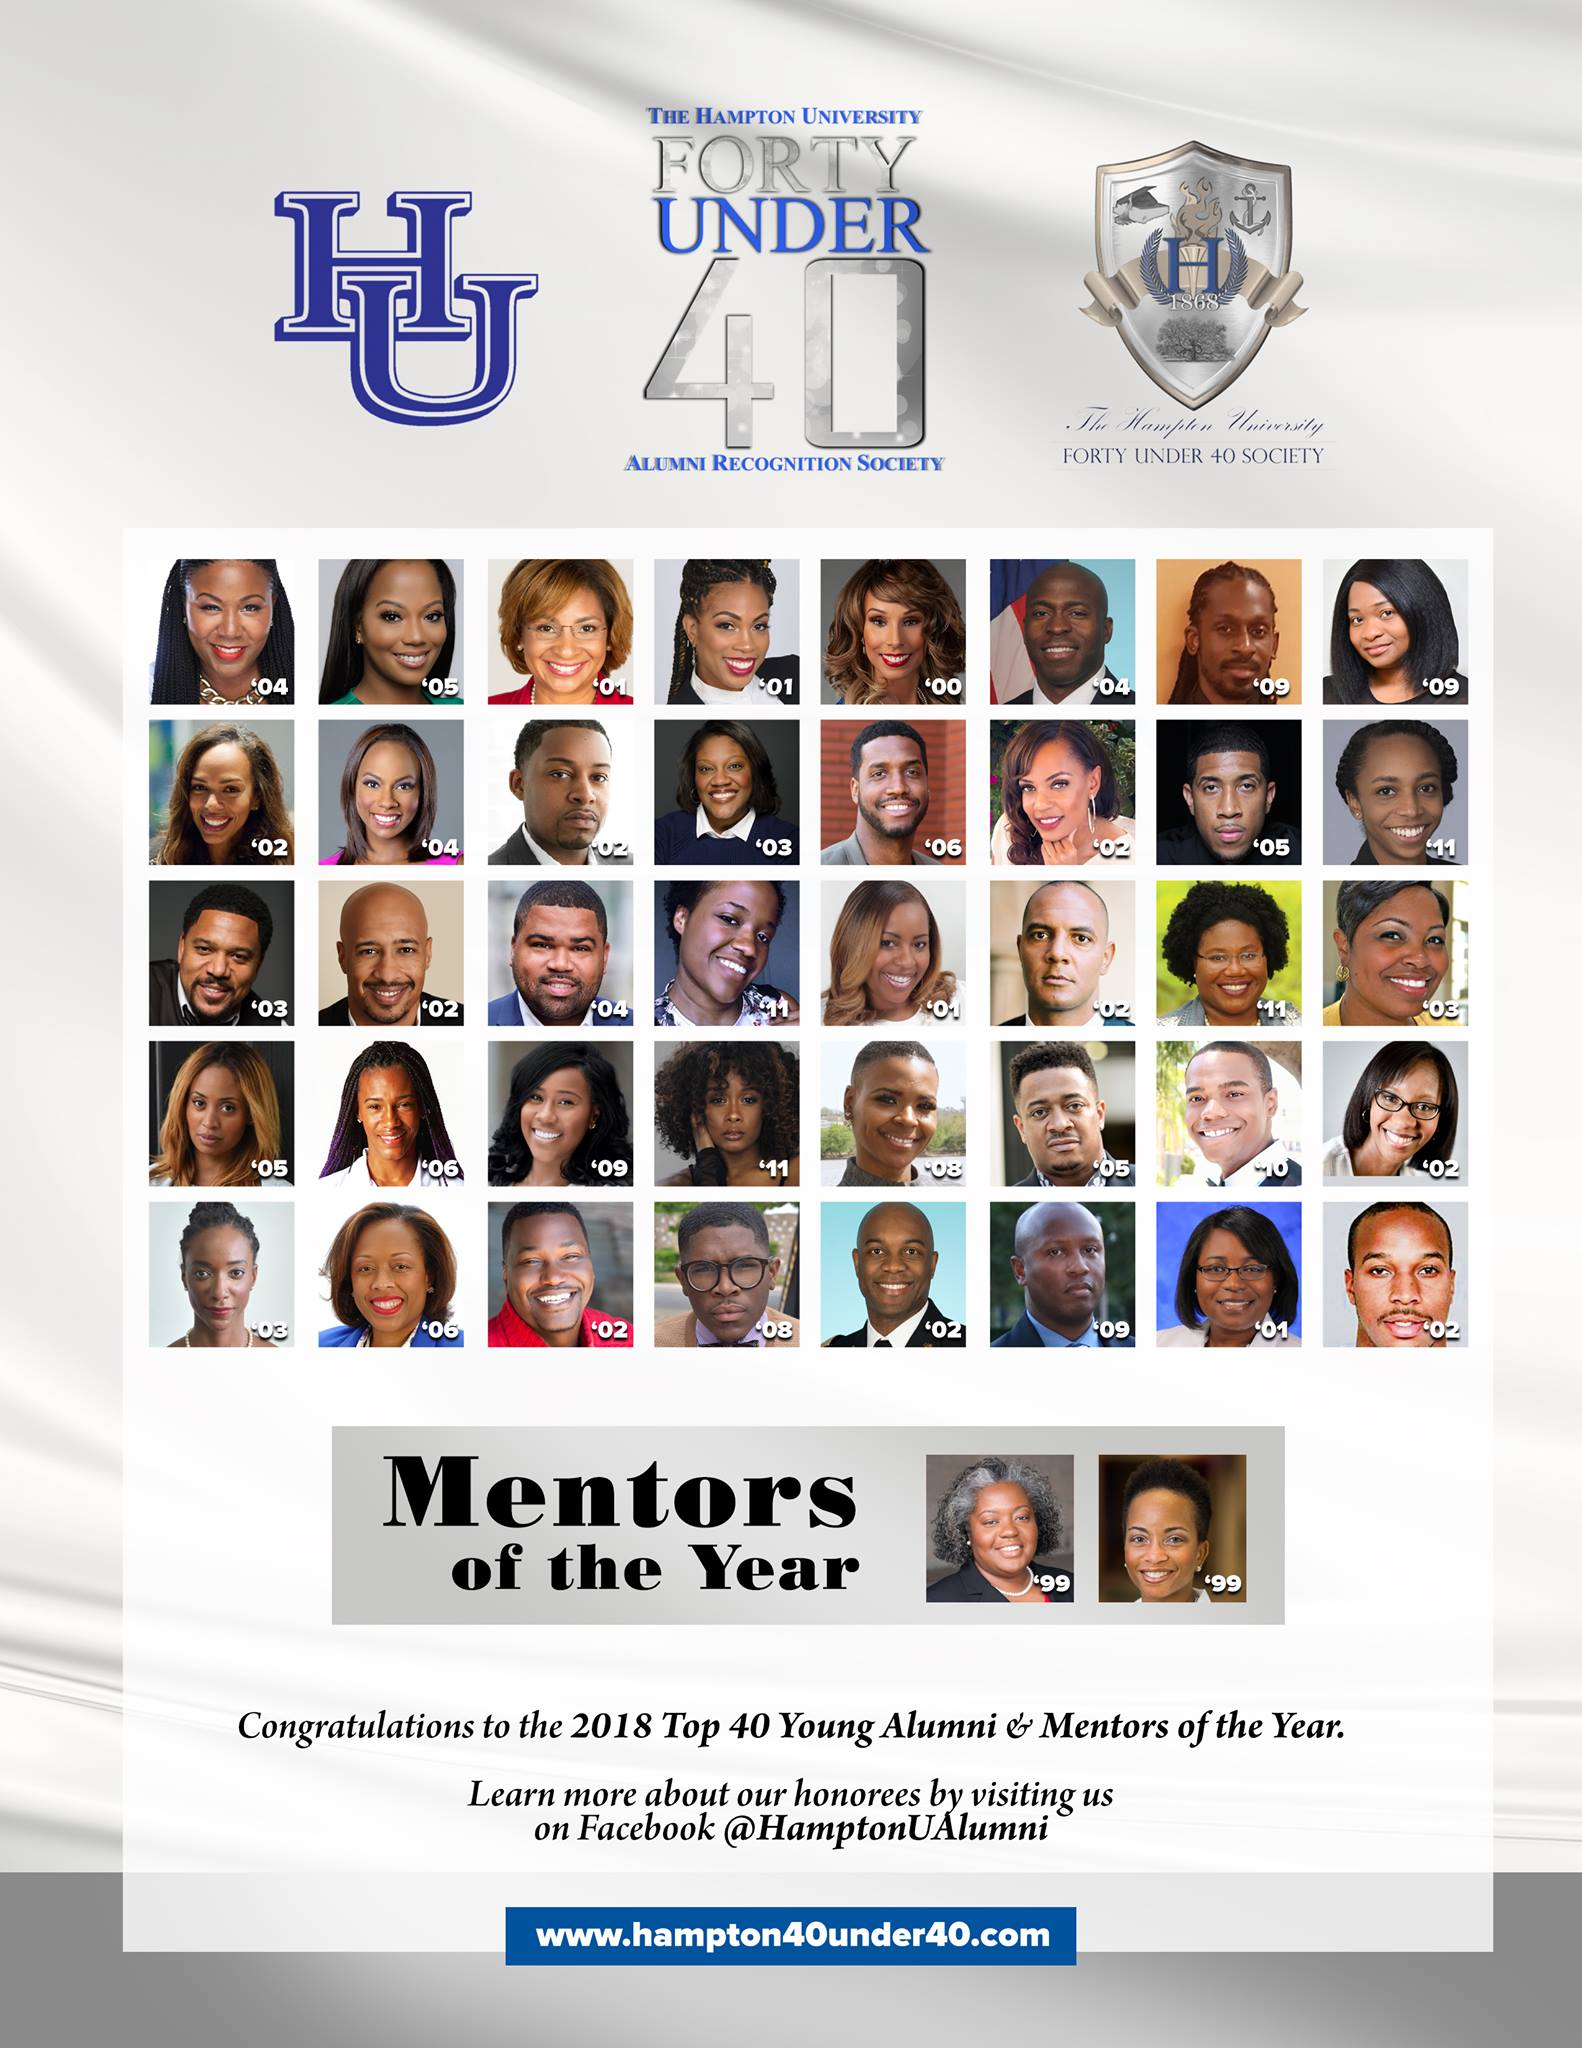 The 2018 class of Hampton University's Forty under 40 Alumni Recognition Society